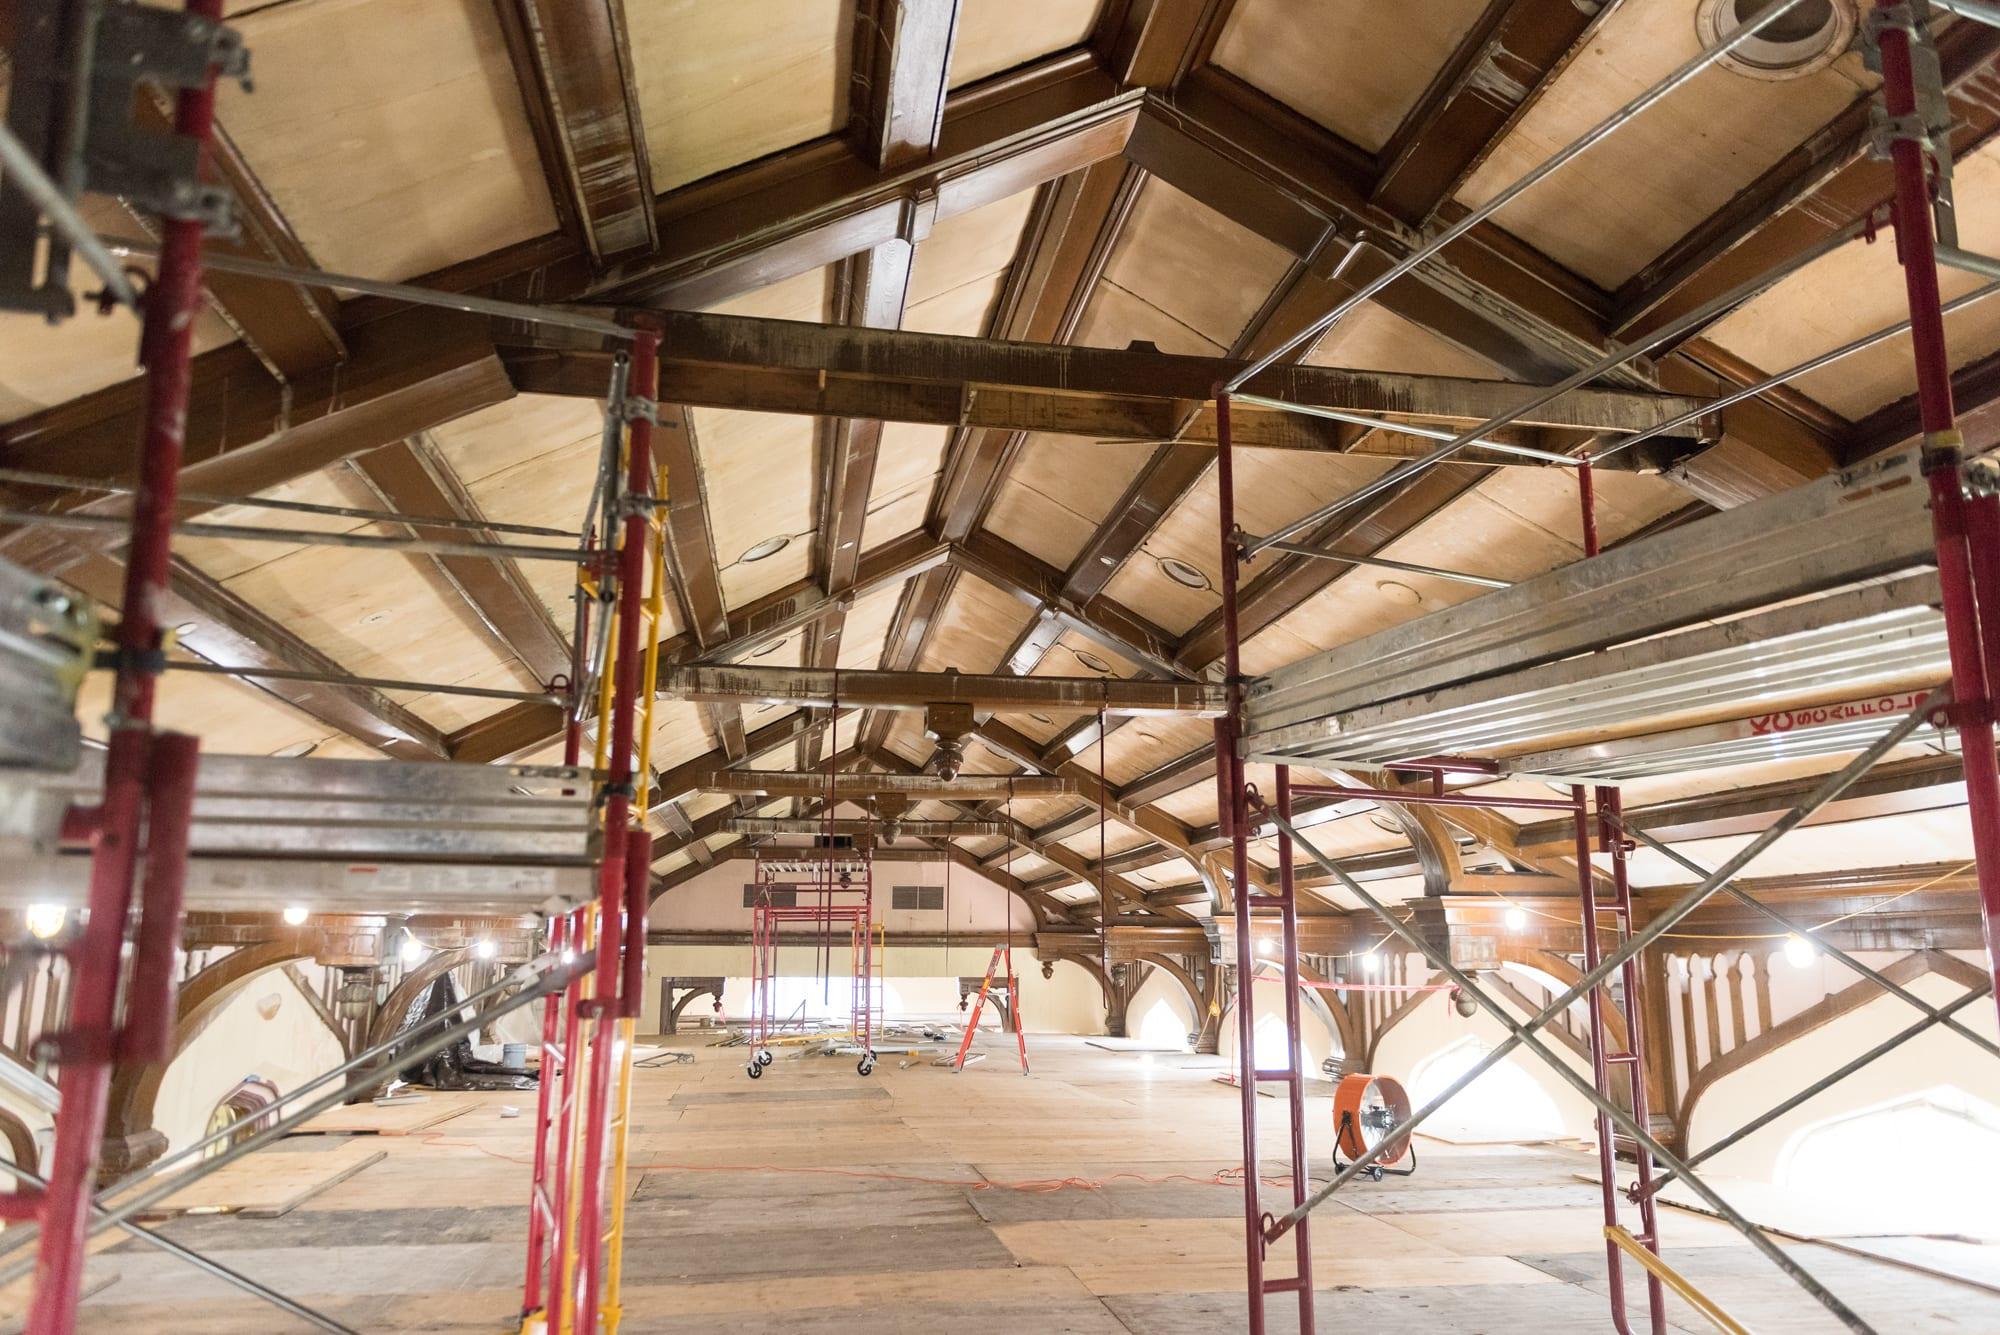 Some metal scaffolding sits on the elevated plywood floor directly under the Great Room's ceiling and wooden beams.